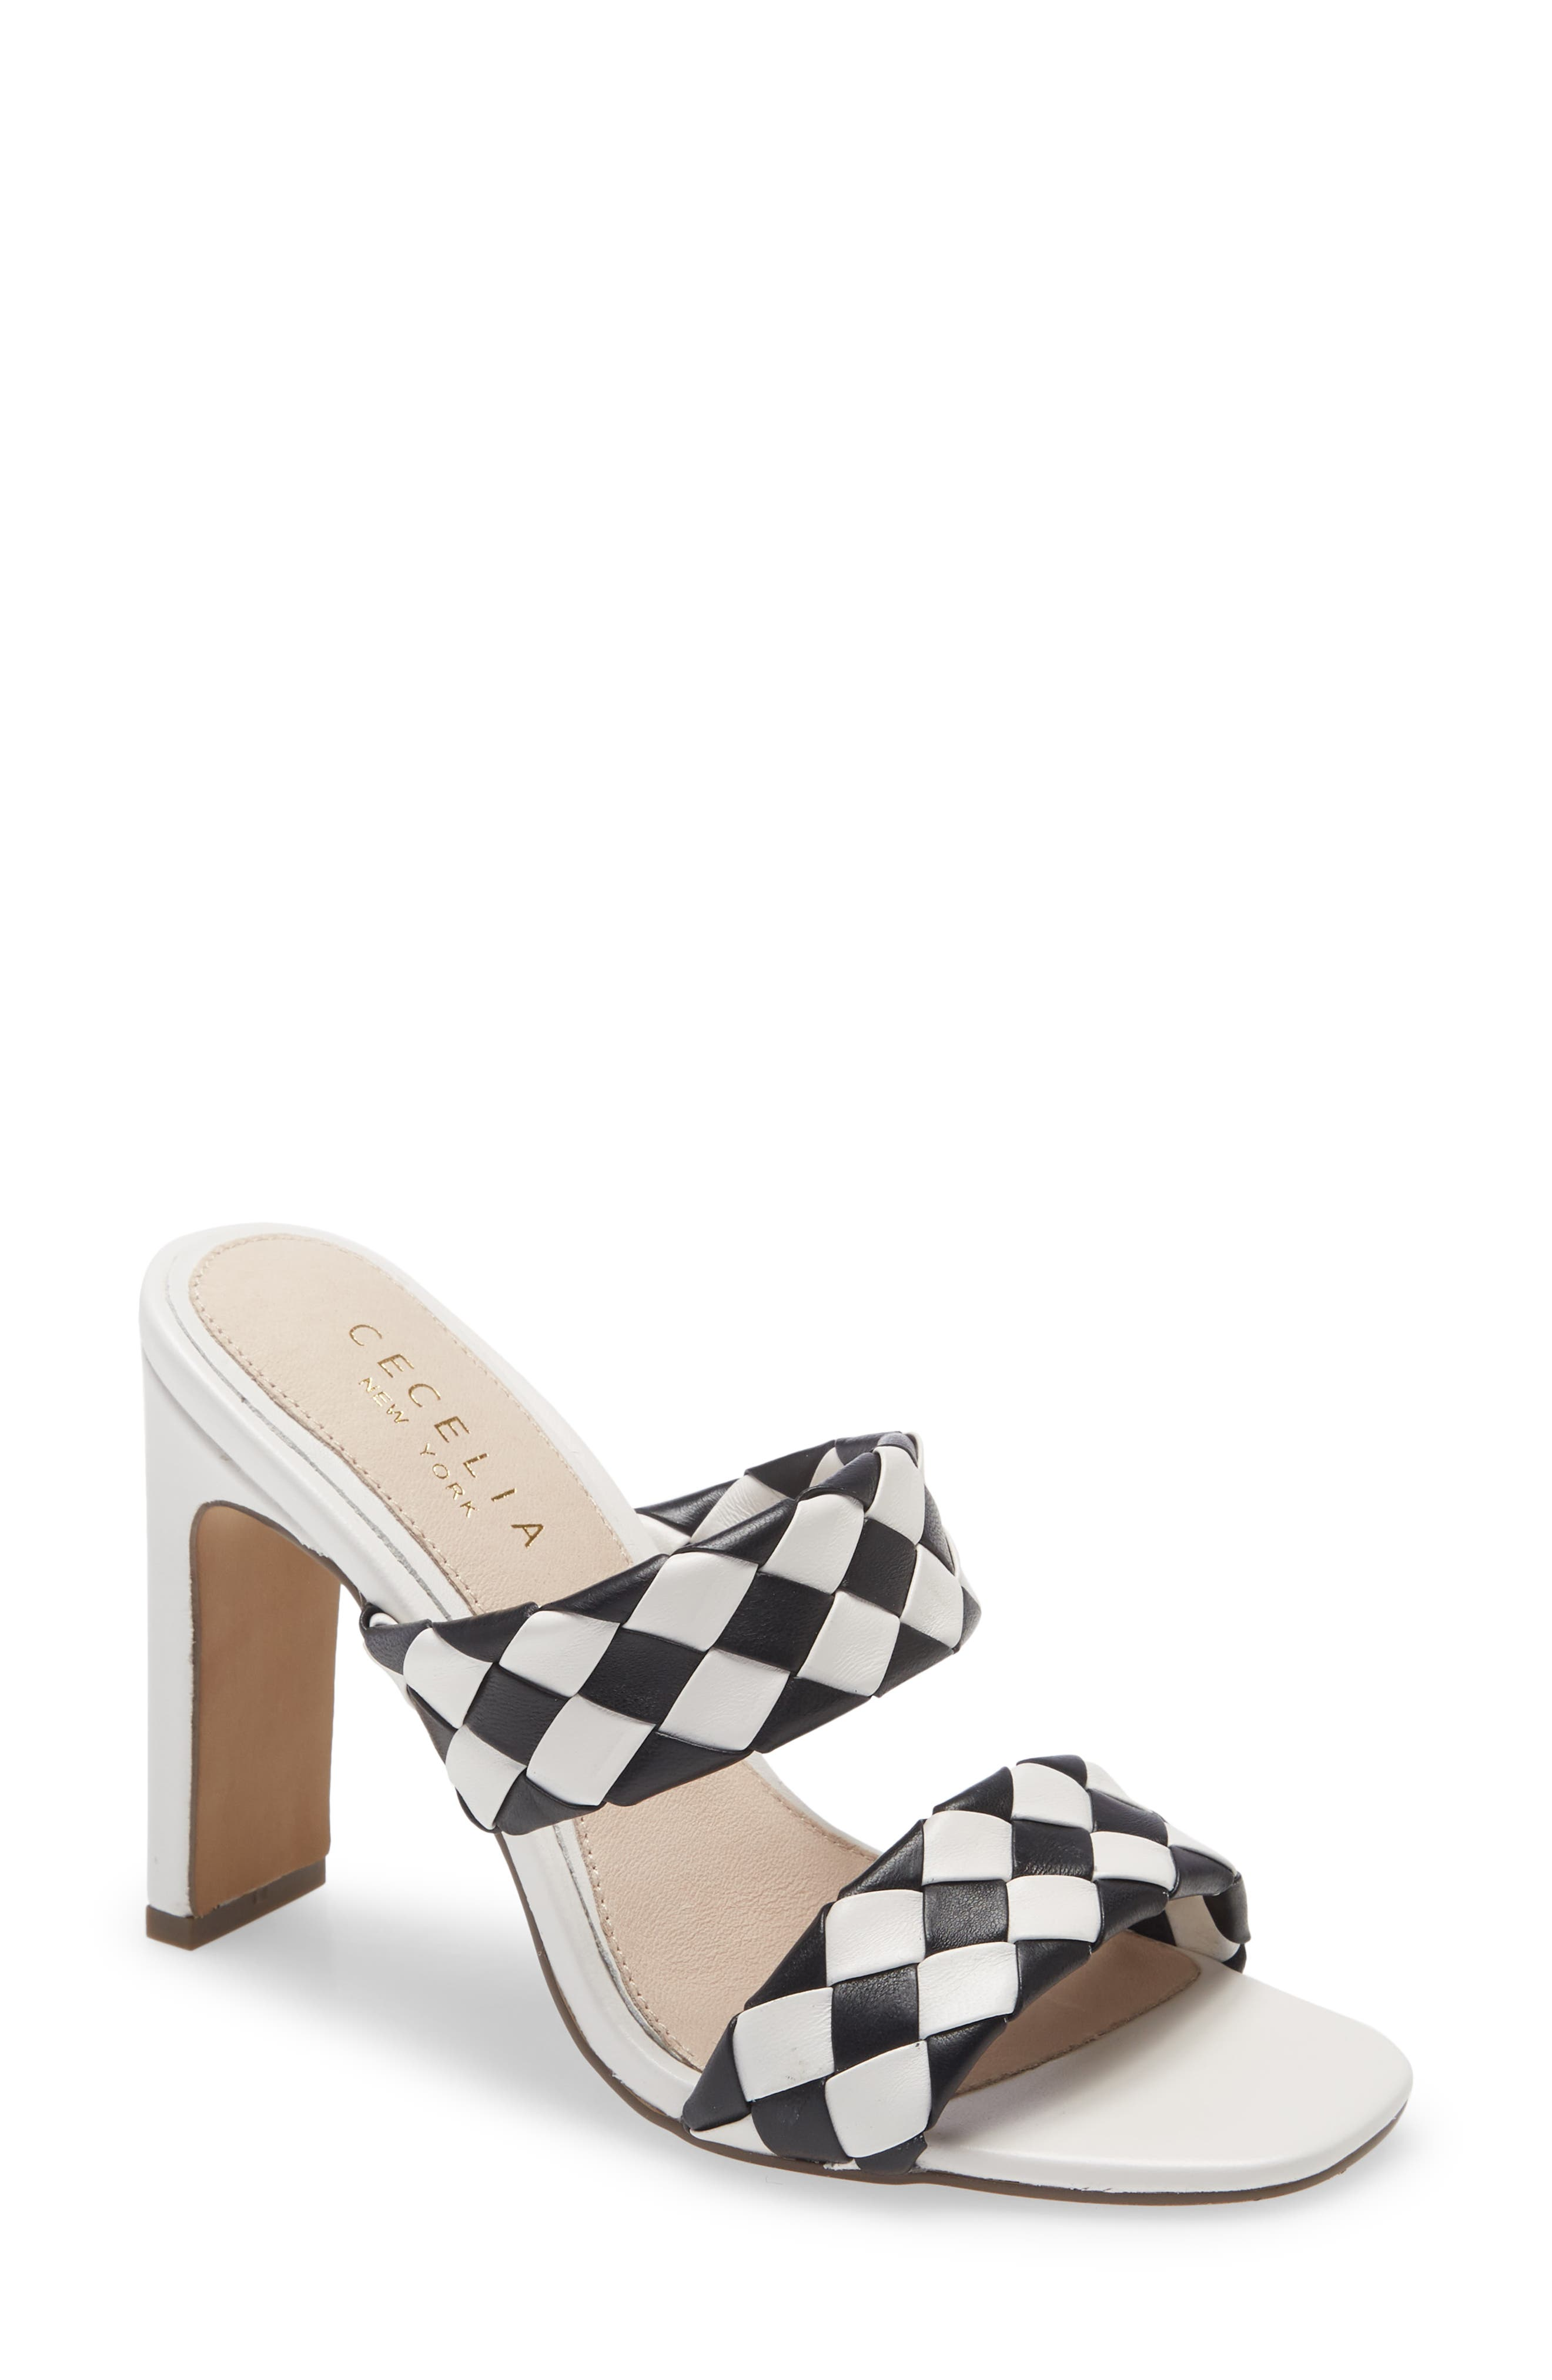 Women's Cecilia New York East To West Woven Sandal